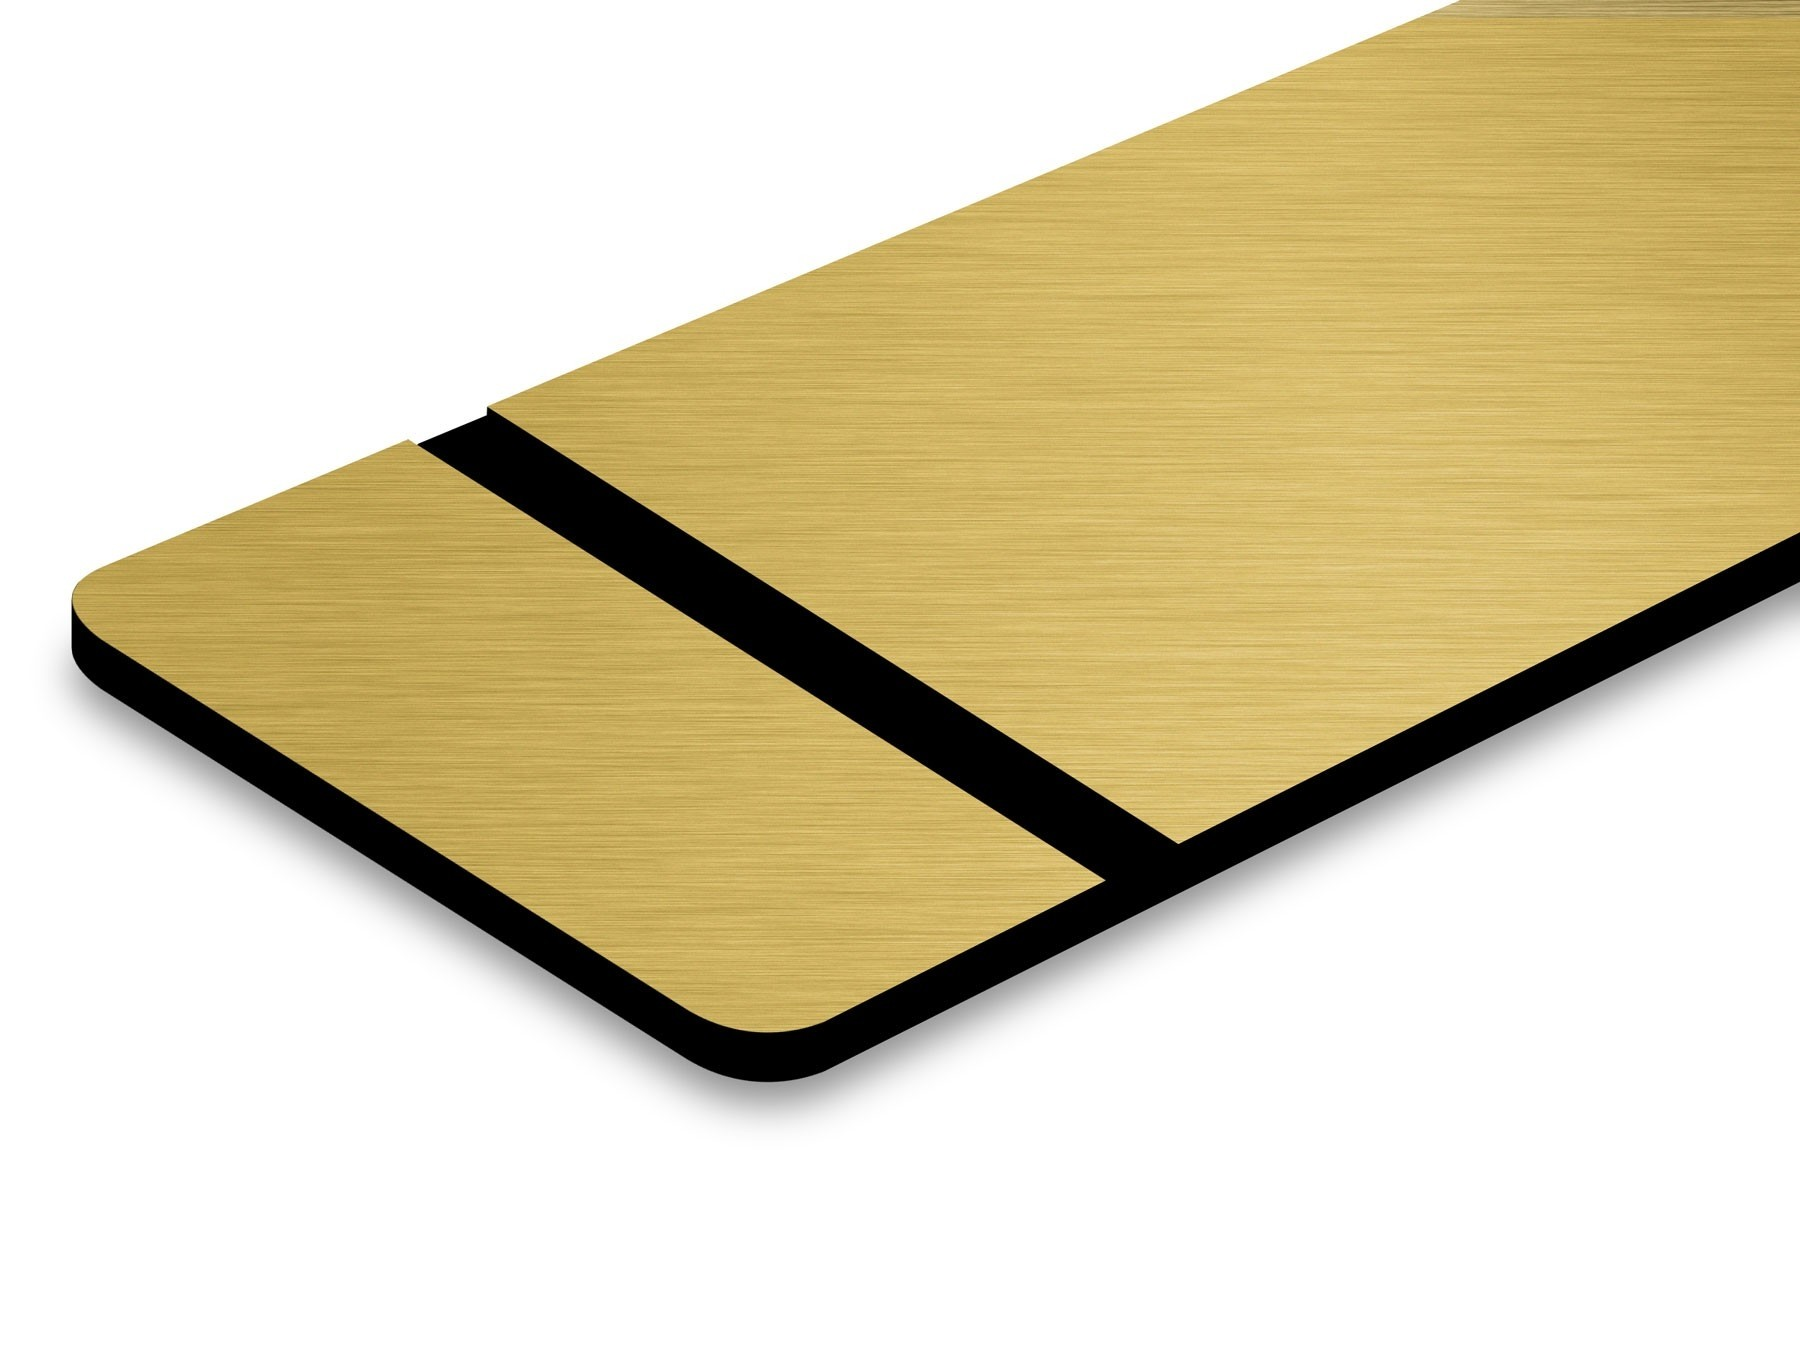 TroLase Metallic, Brushed Gold/Black, 2ply, 1.6 mm